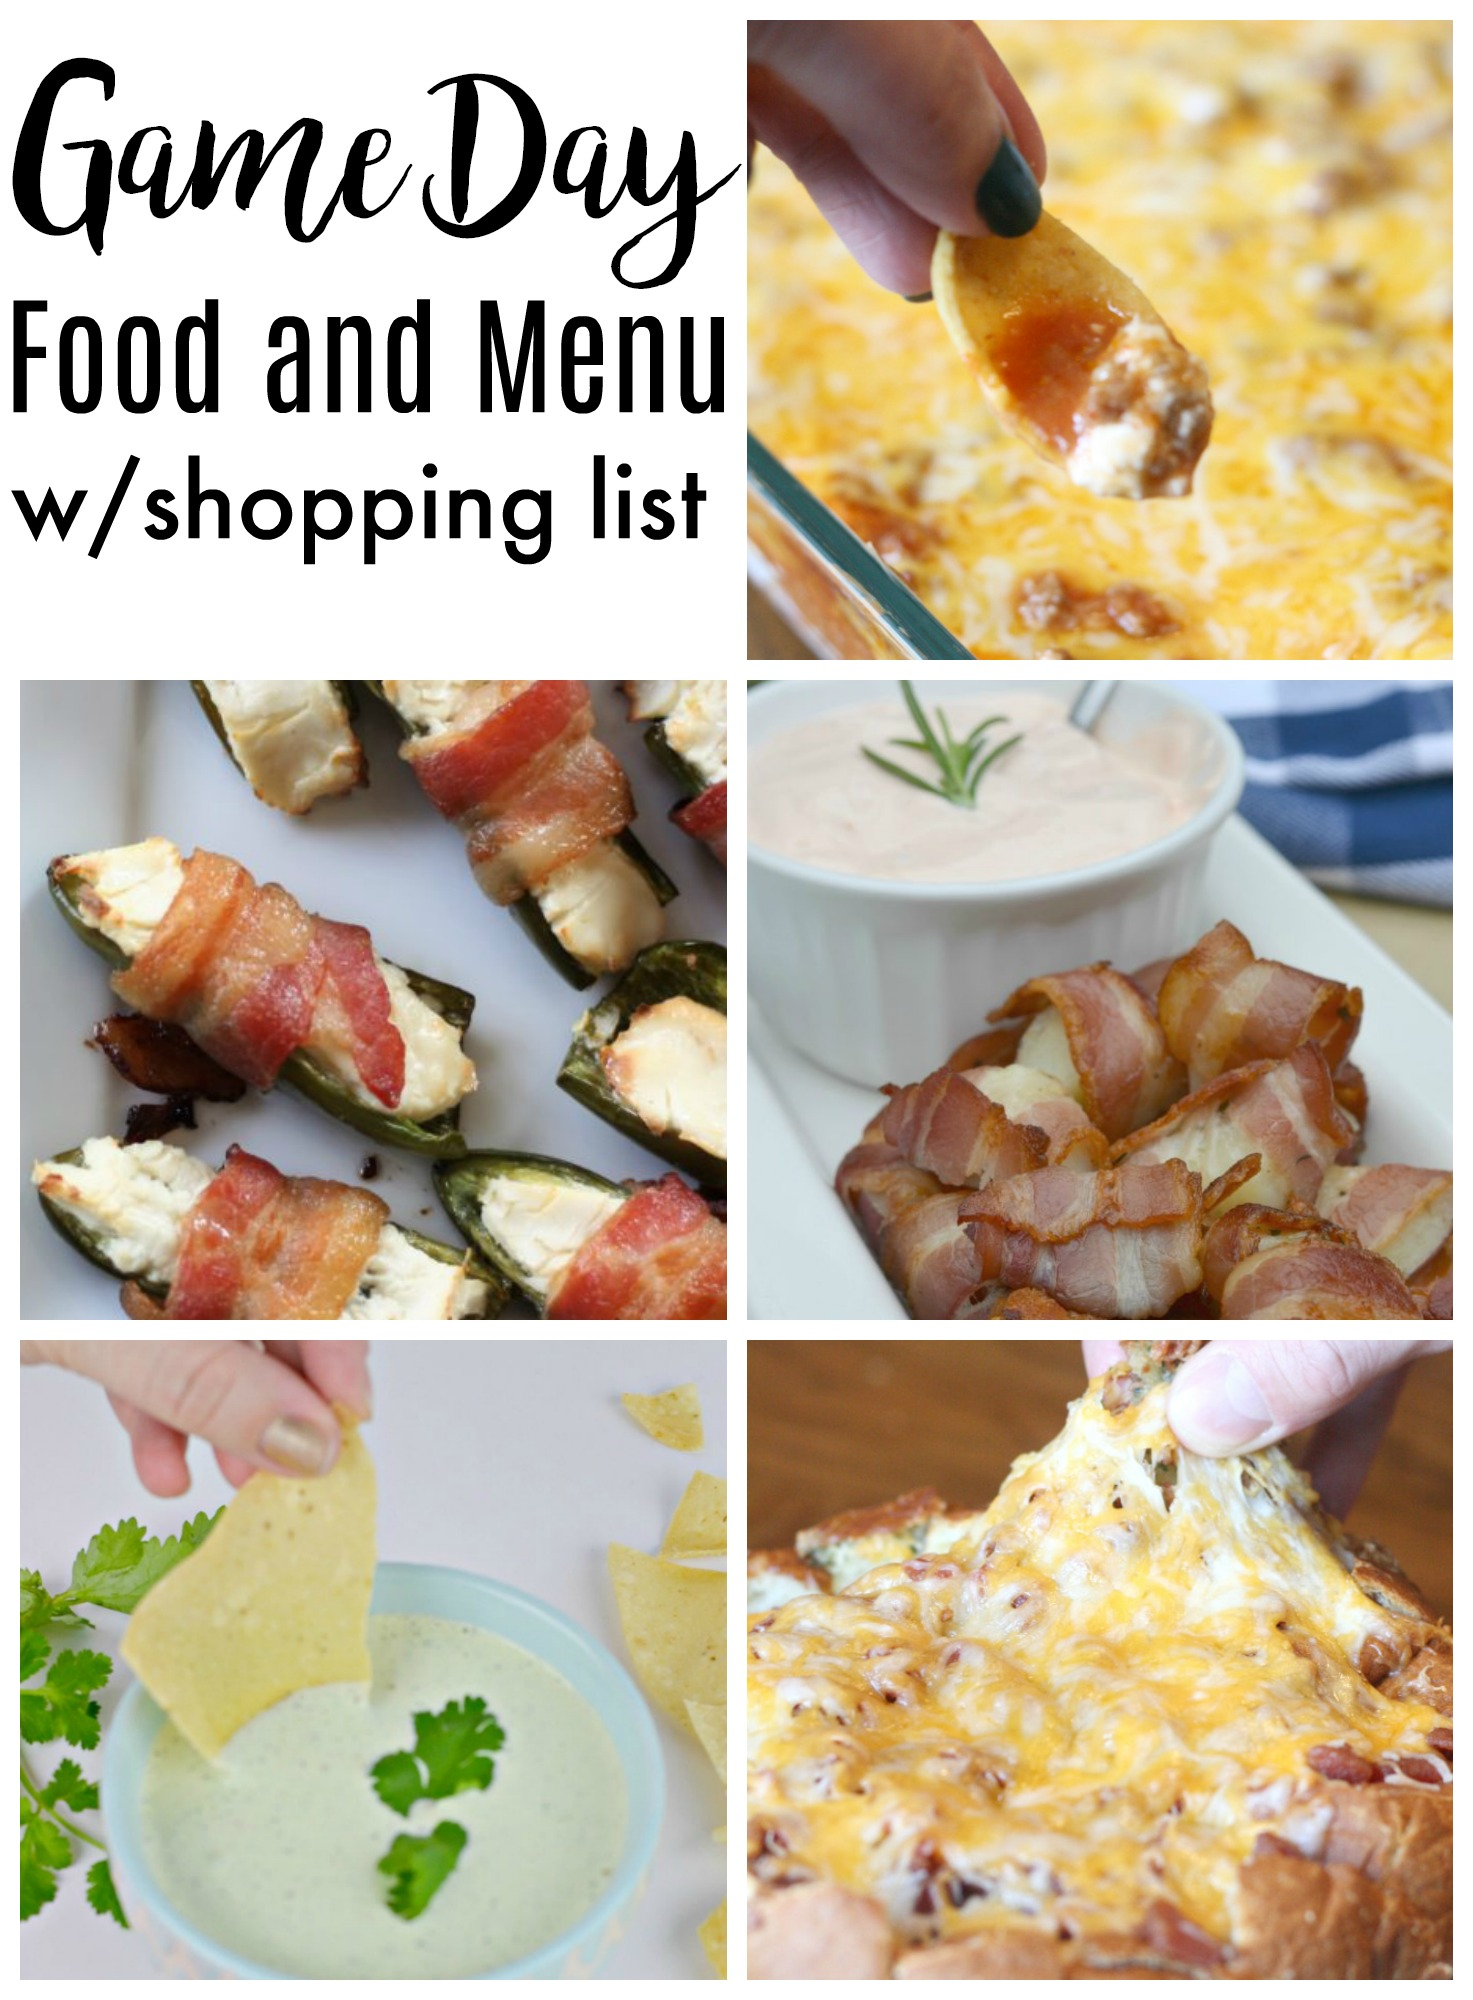 Game Day Food and Menu with Shopping List